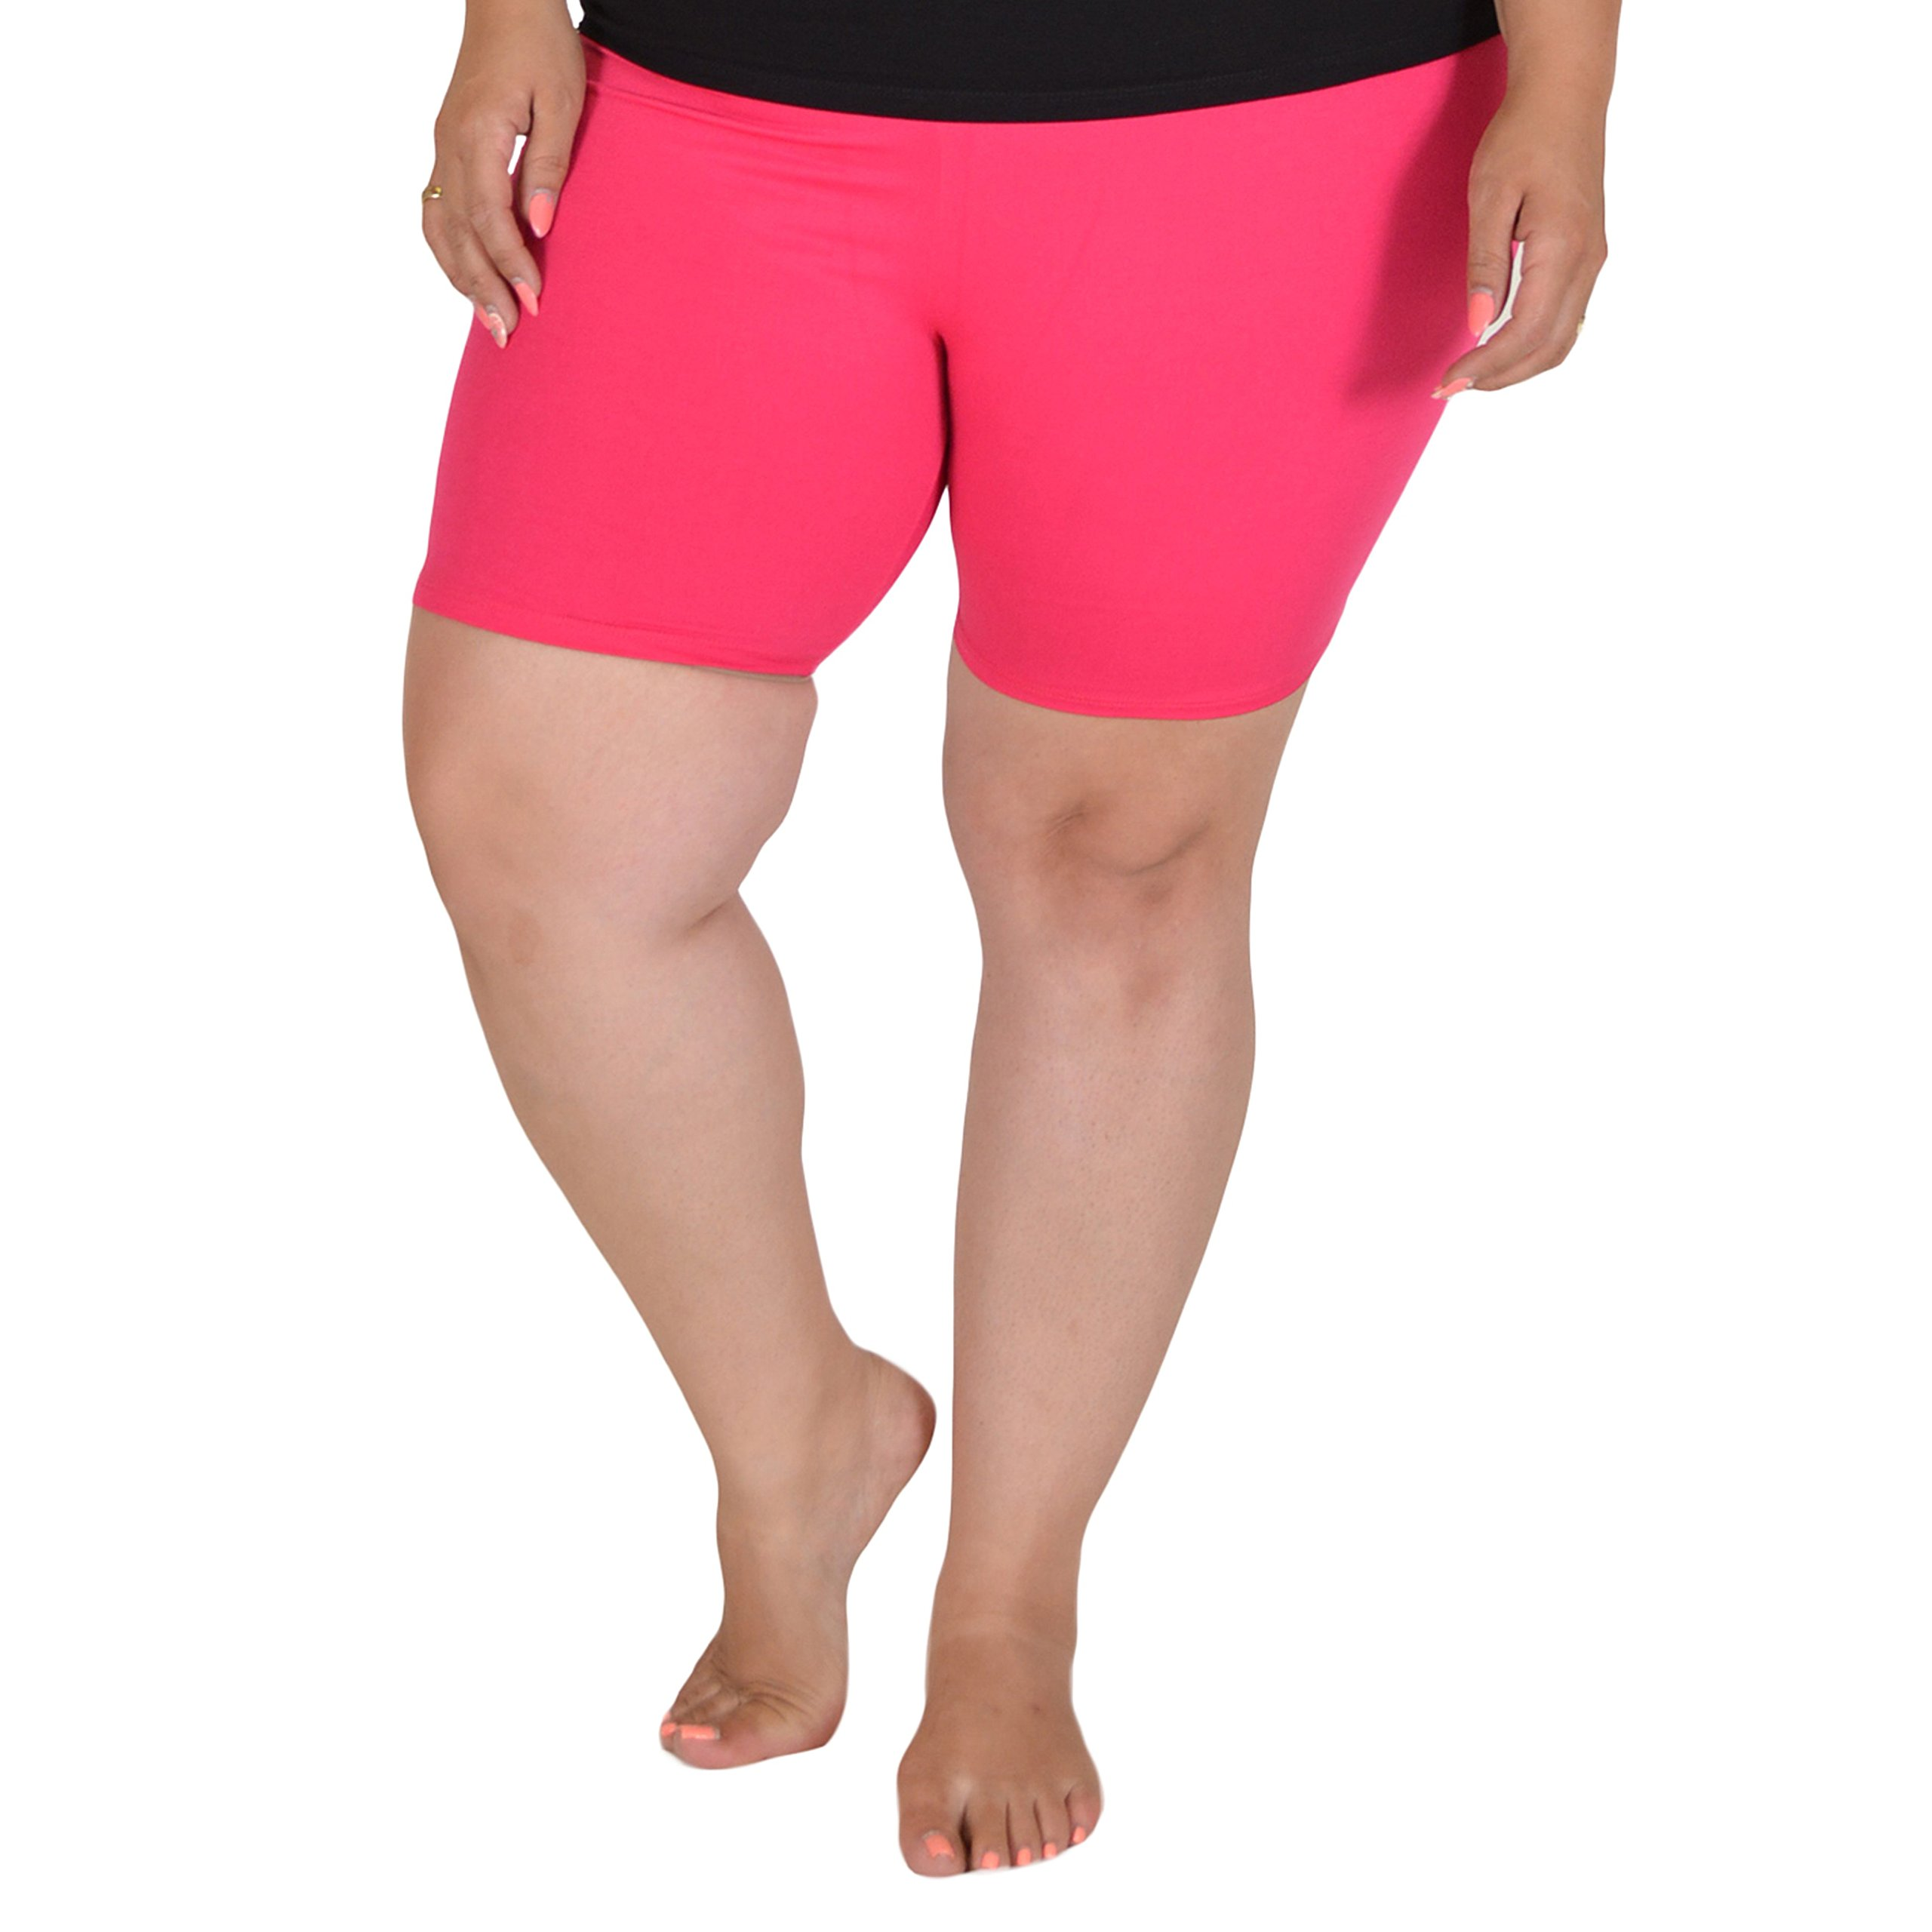 Stretch is Comfort Women's Cotton Plus Size Bike Shorts Hot Pink X-Large